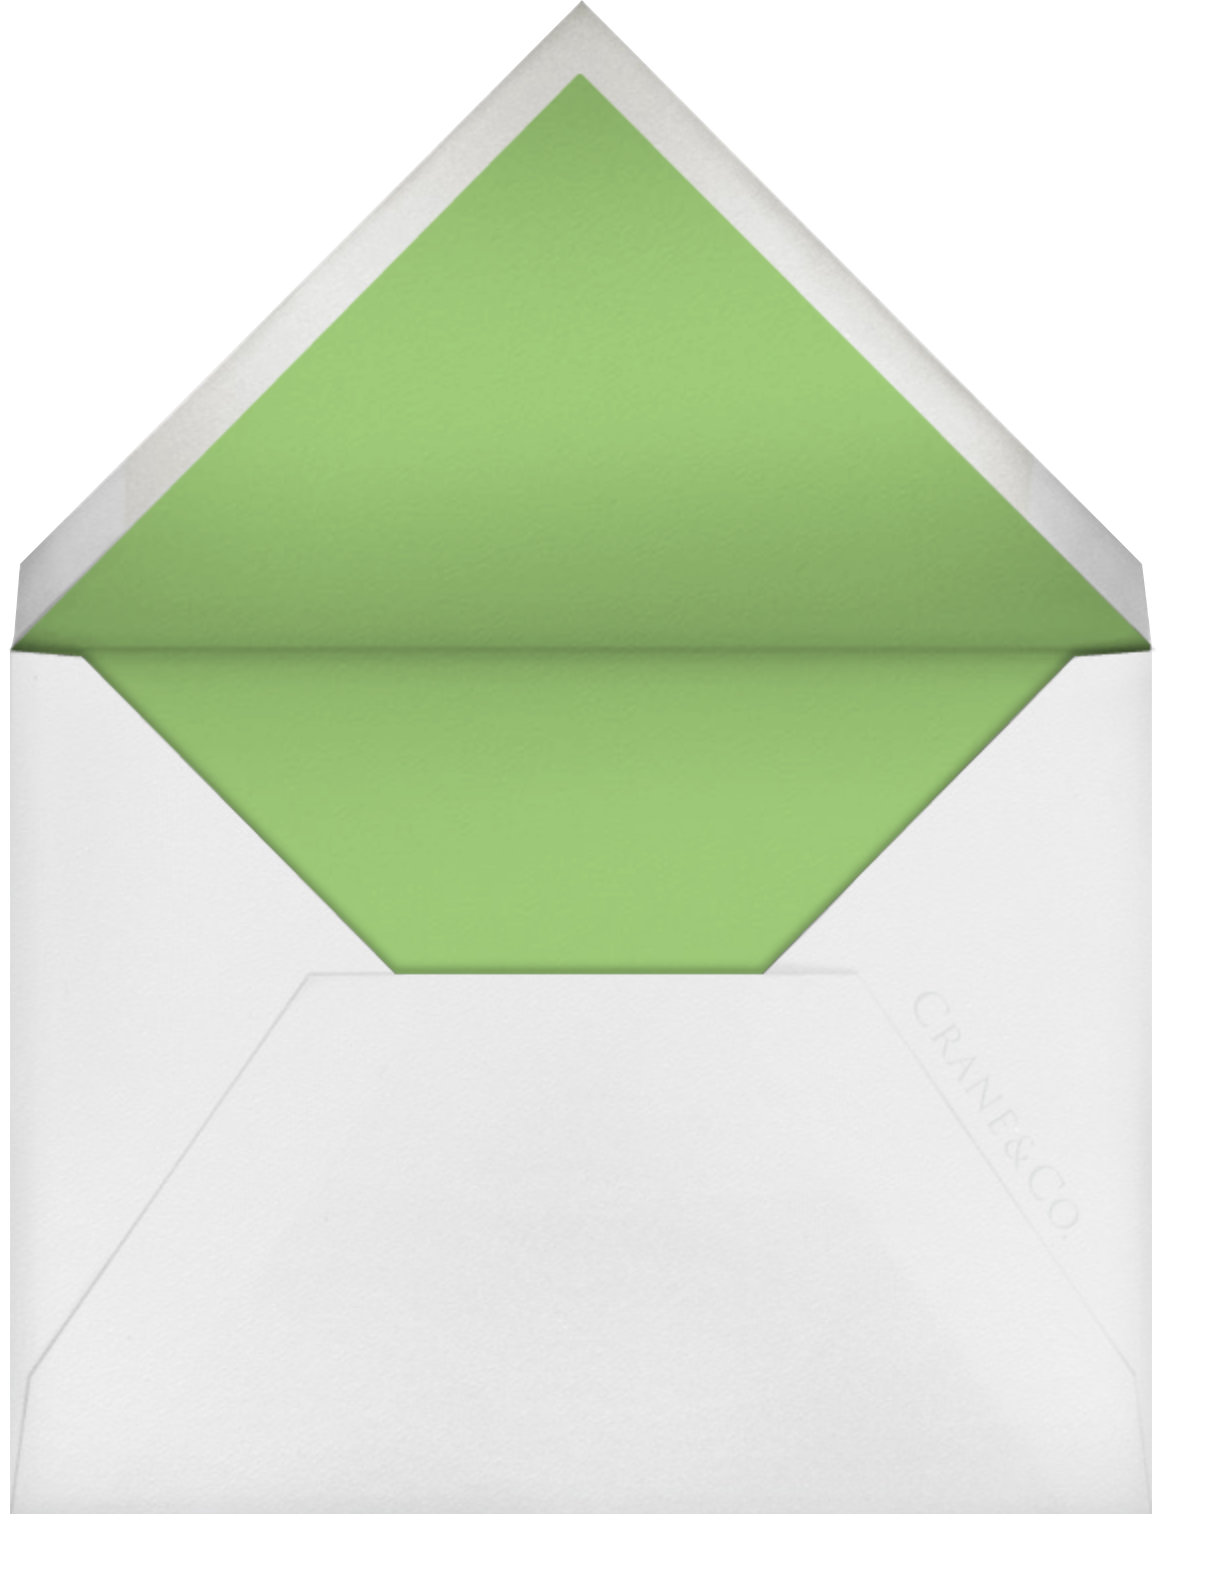 Painted Border - Spring Green - Paperless Post - Personalized stationery - envelope back